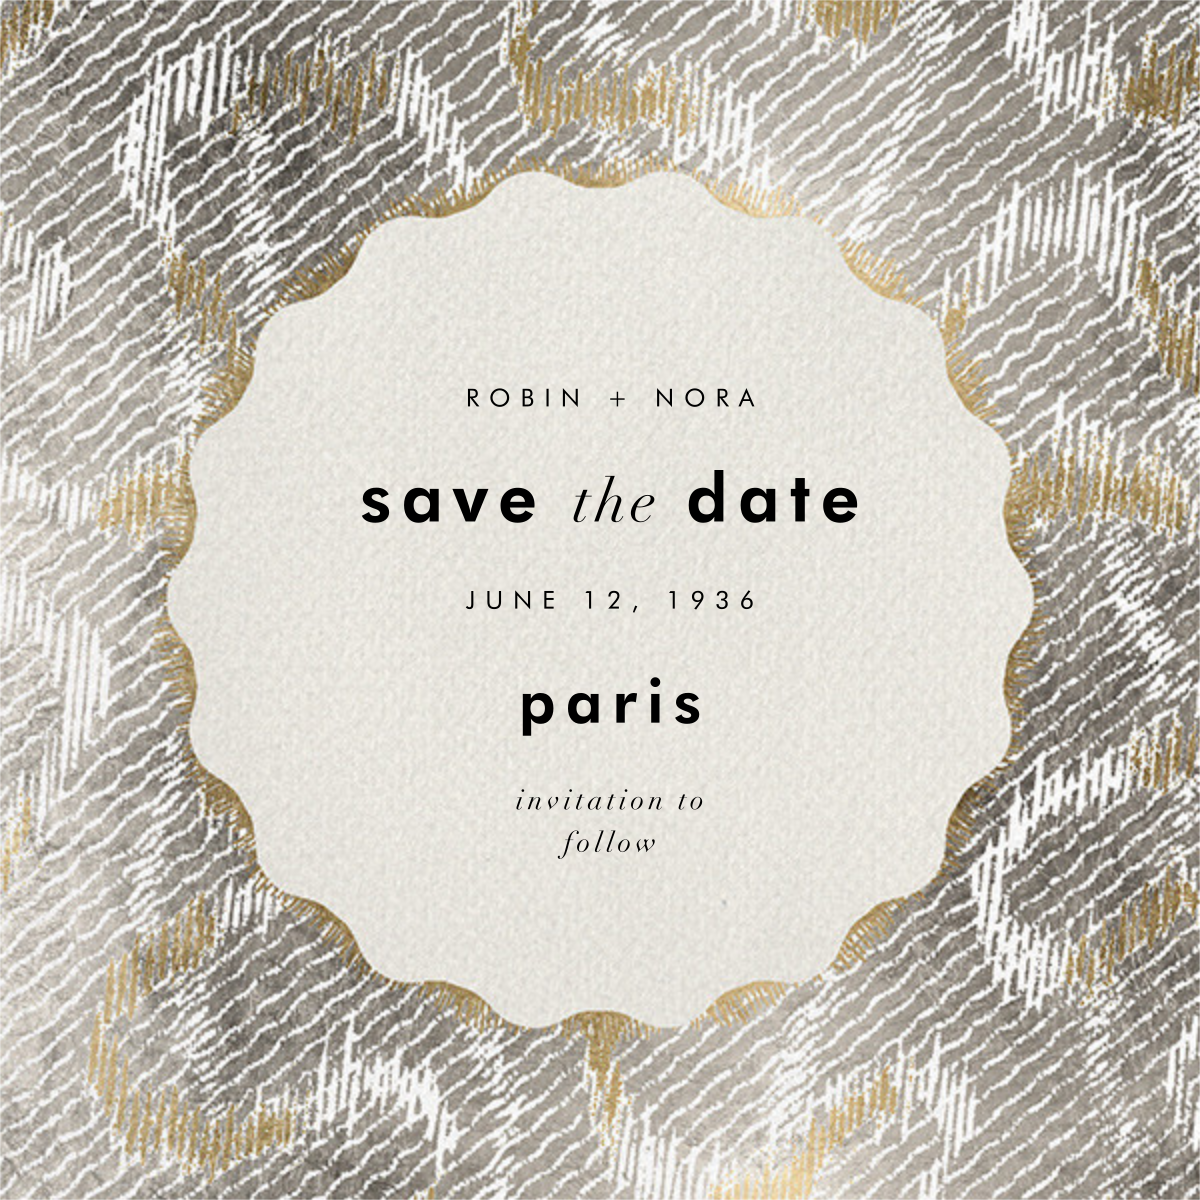 Coquette - Kelly Wearstler - Save the date